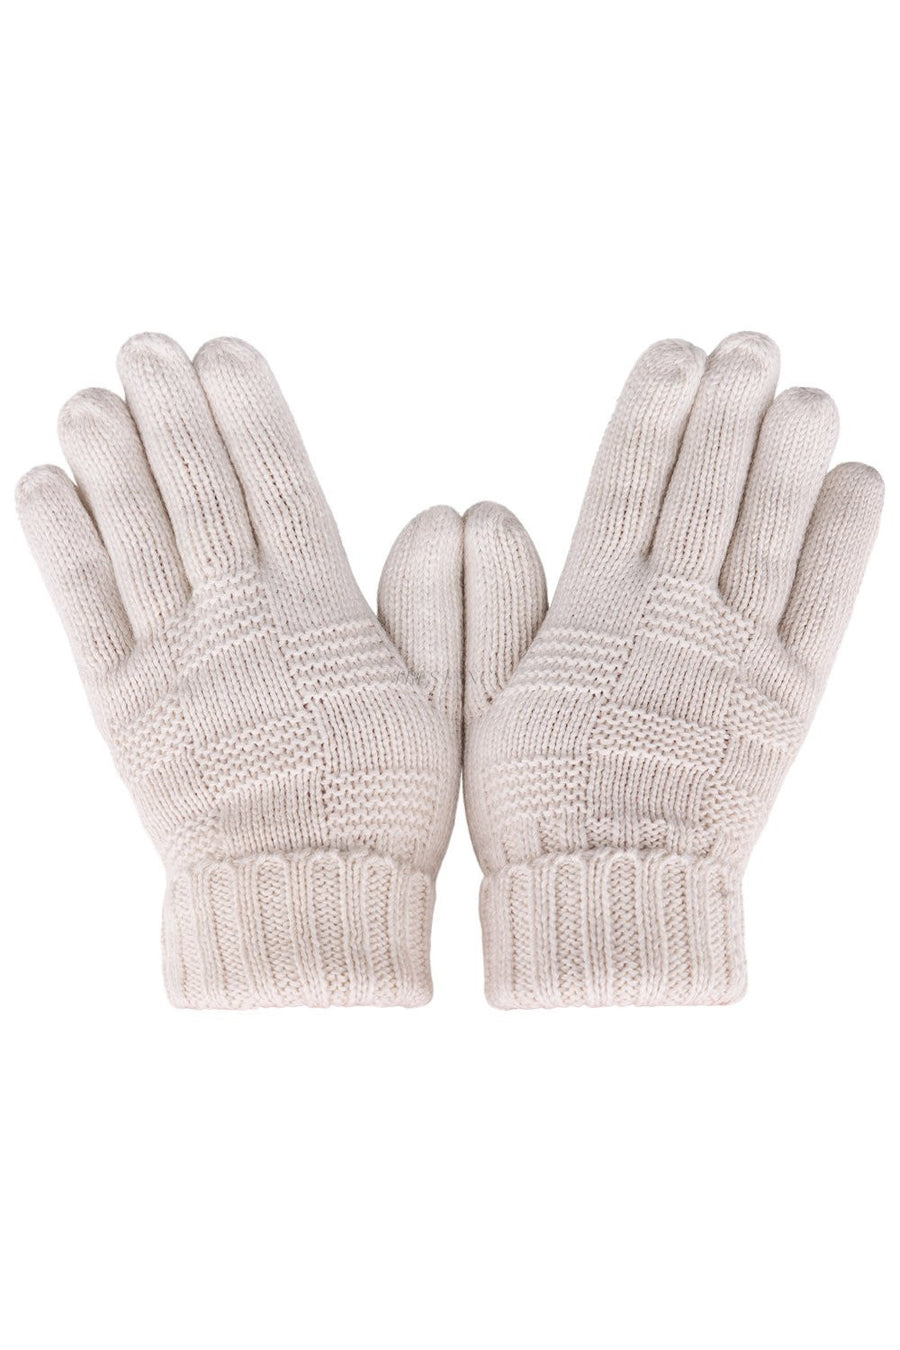 Gloves 65541 Moraj